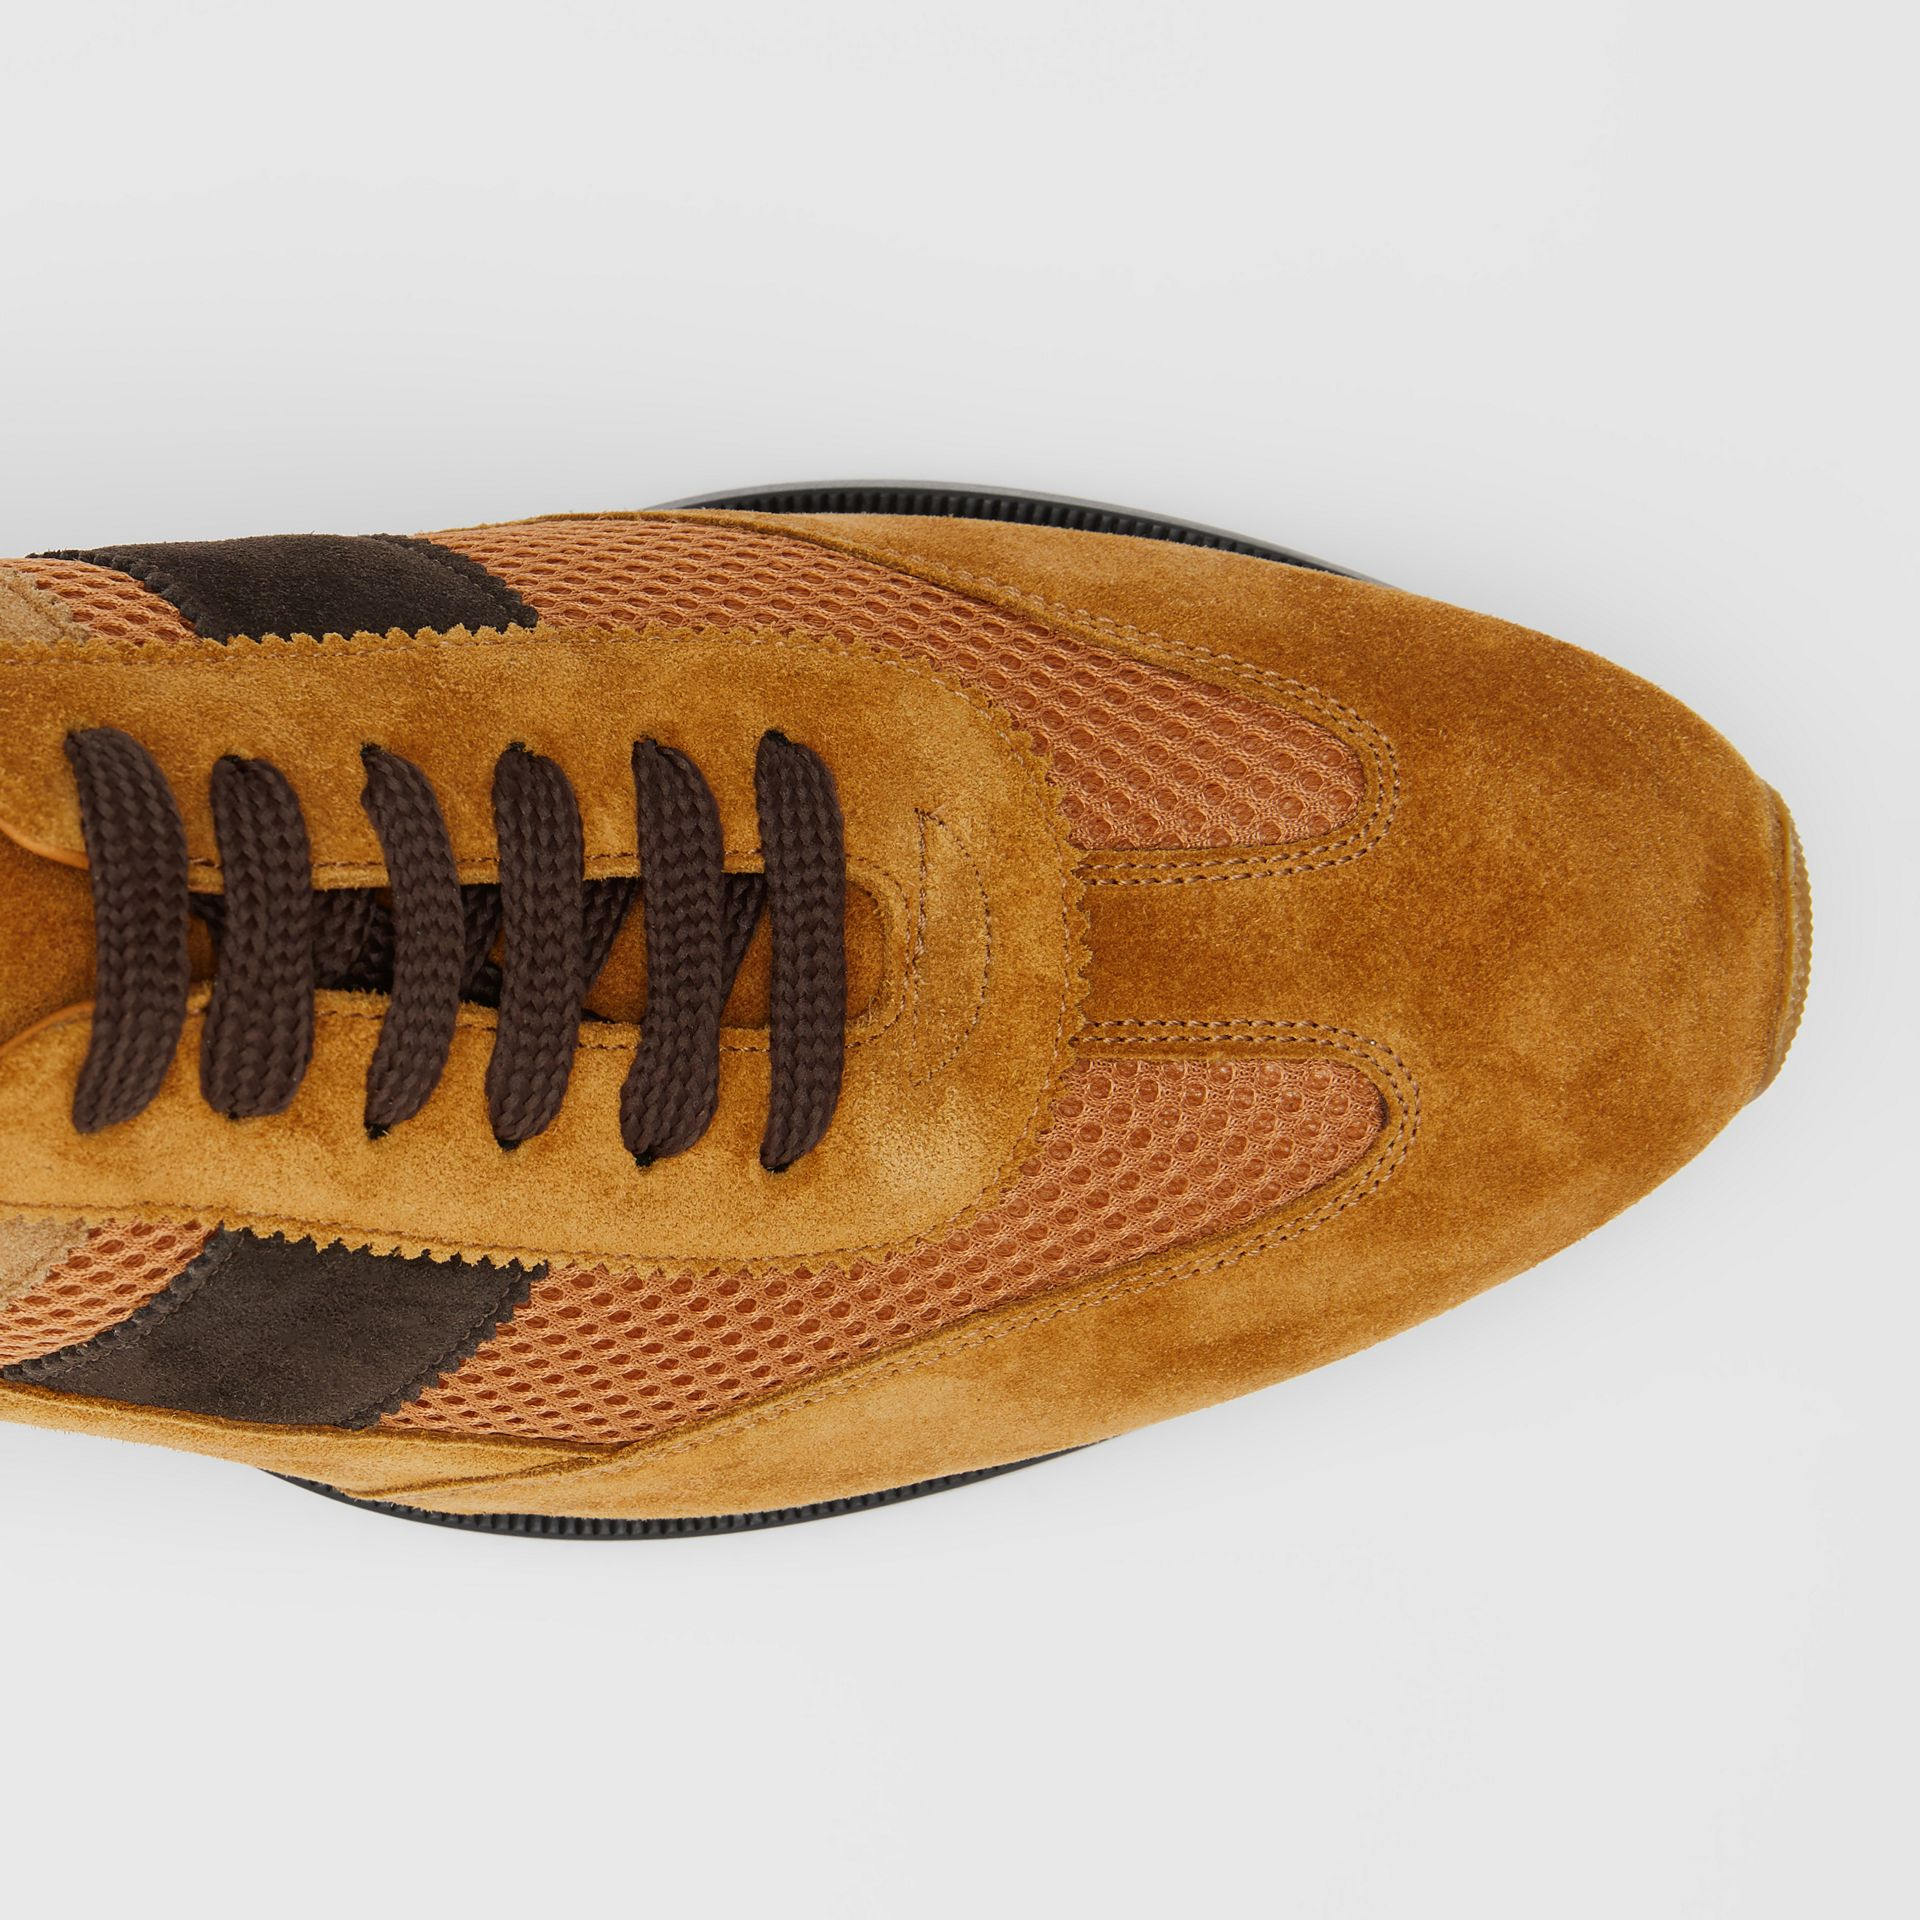 Mesh Panel Suede Lace-up Shoes in Mix Tan - Men | Burberry United Kingdom - gallery image 1